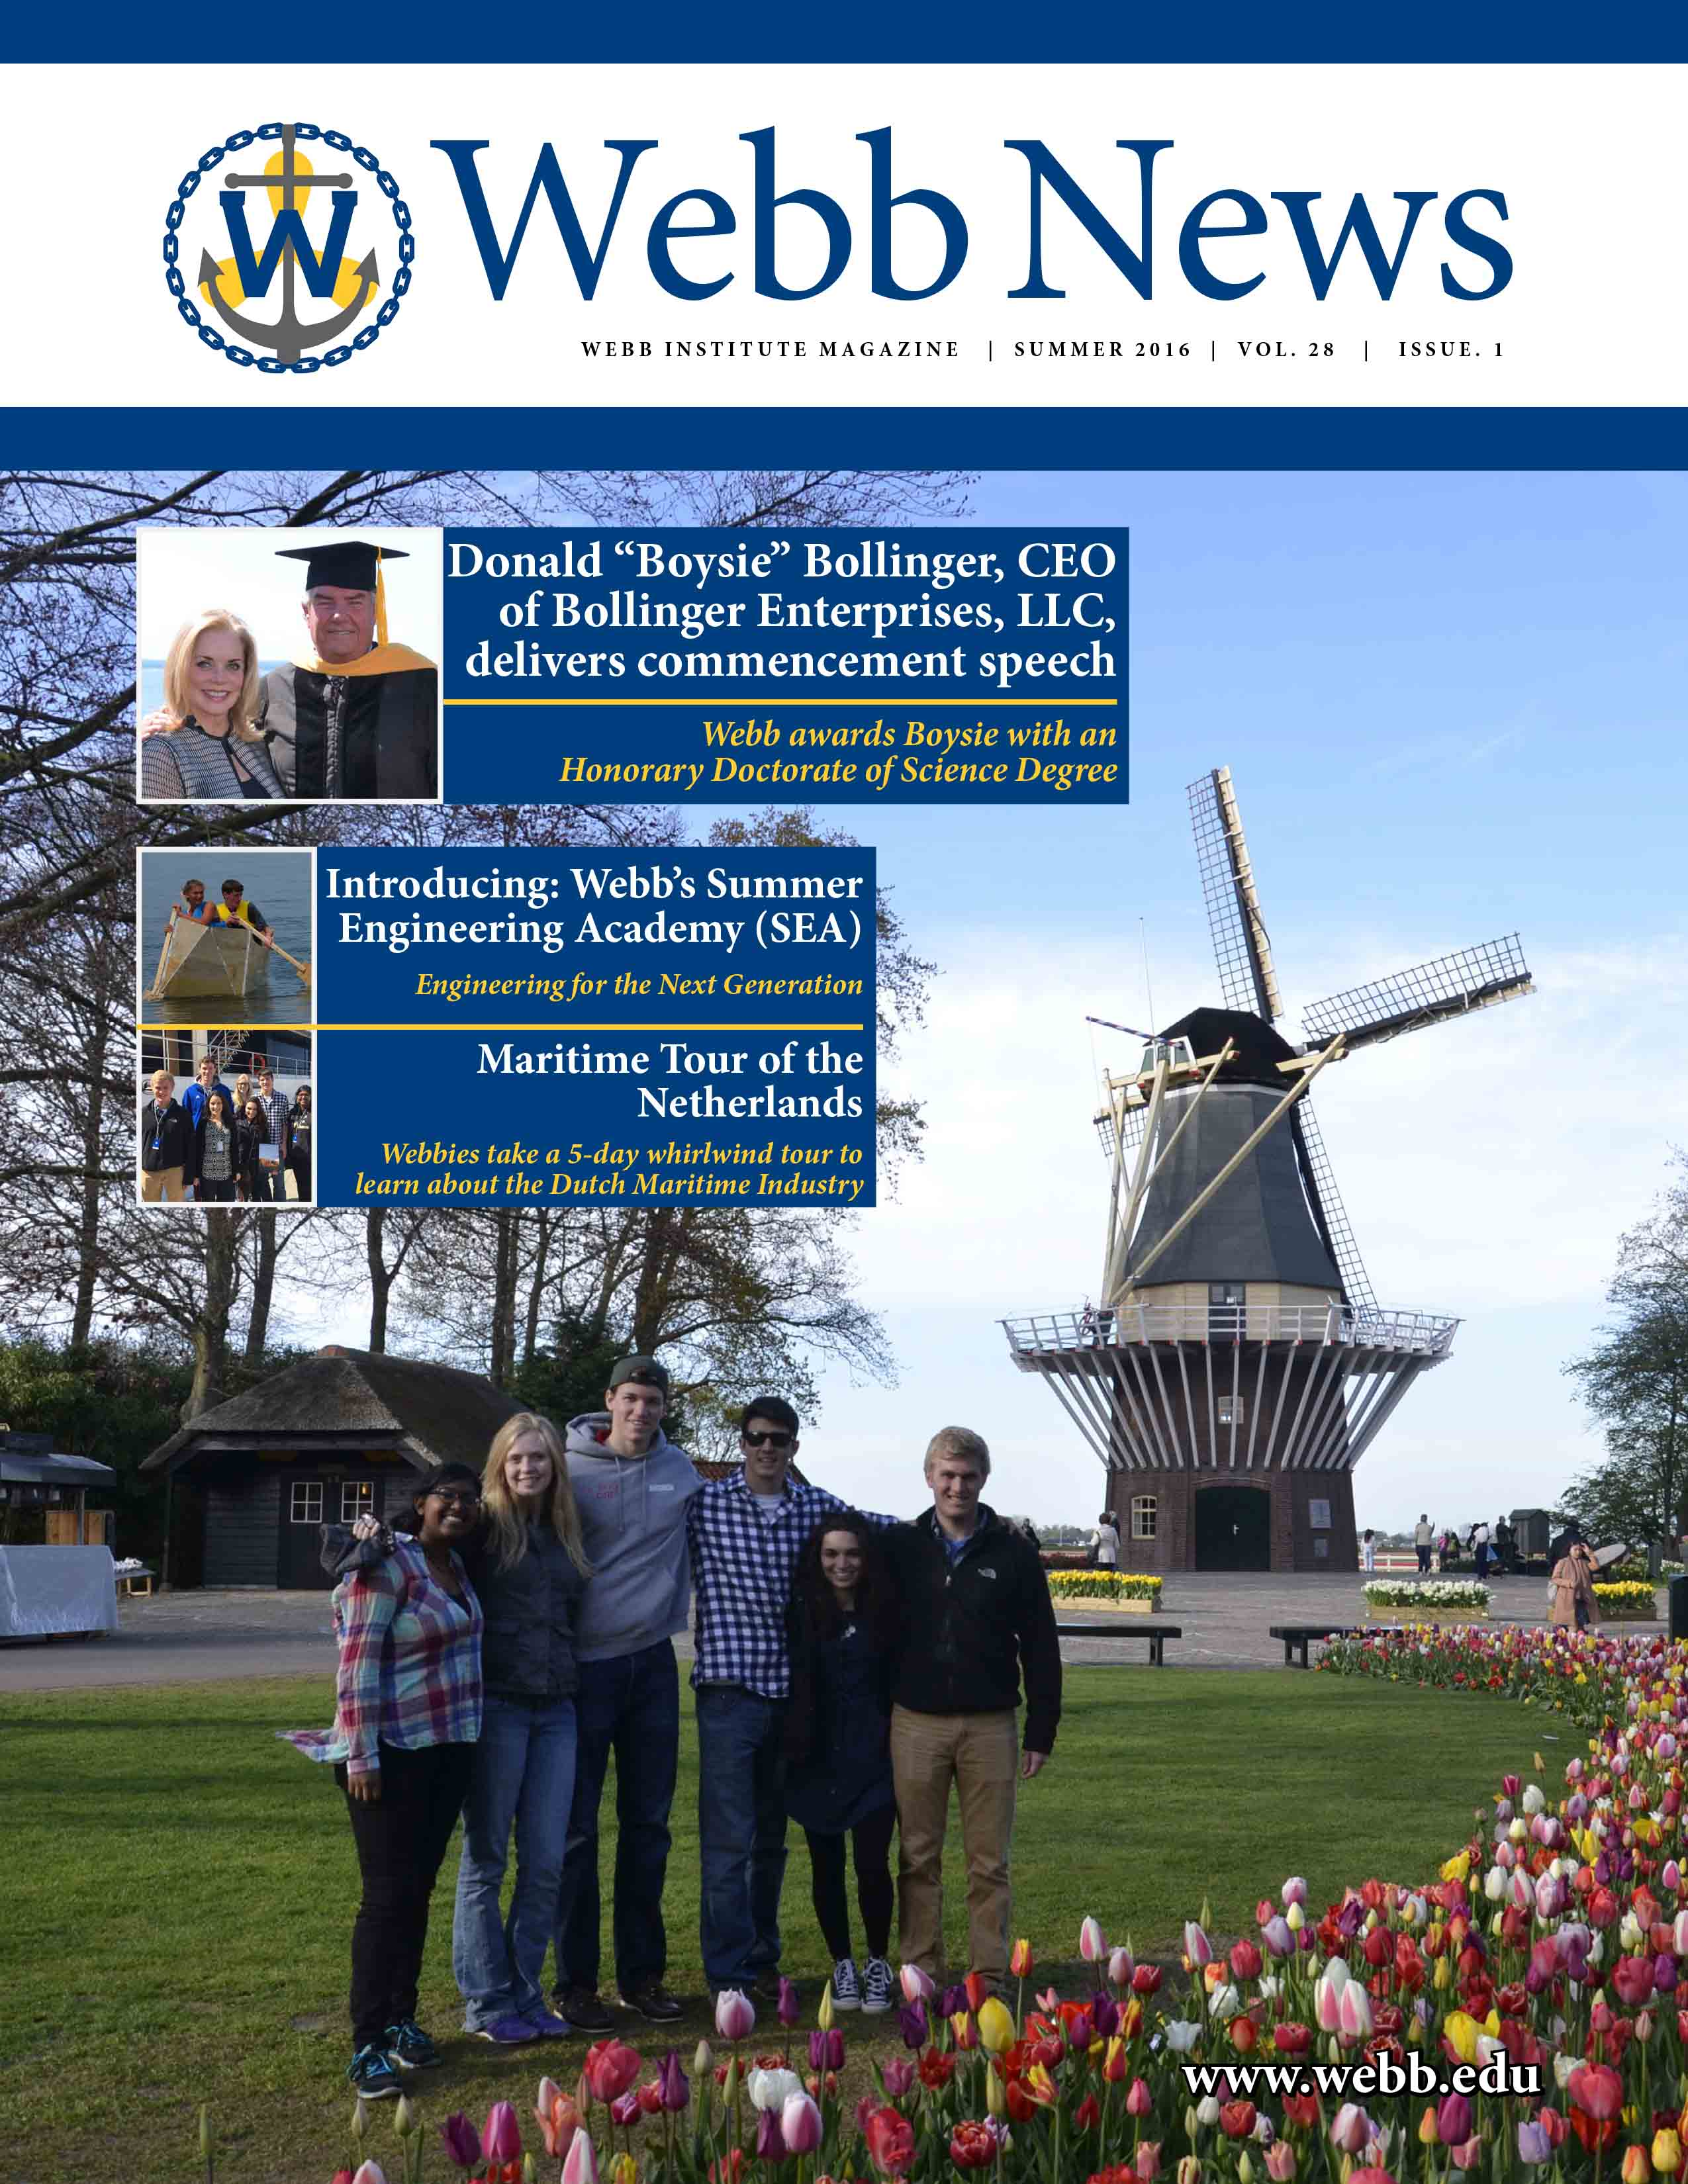 Webb News Summer 2016